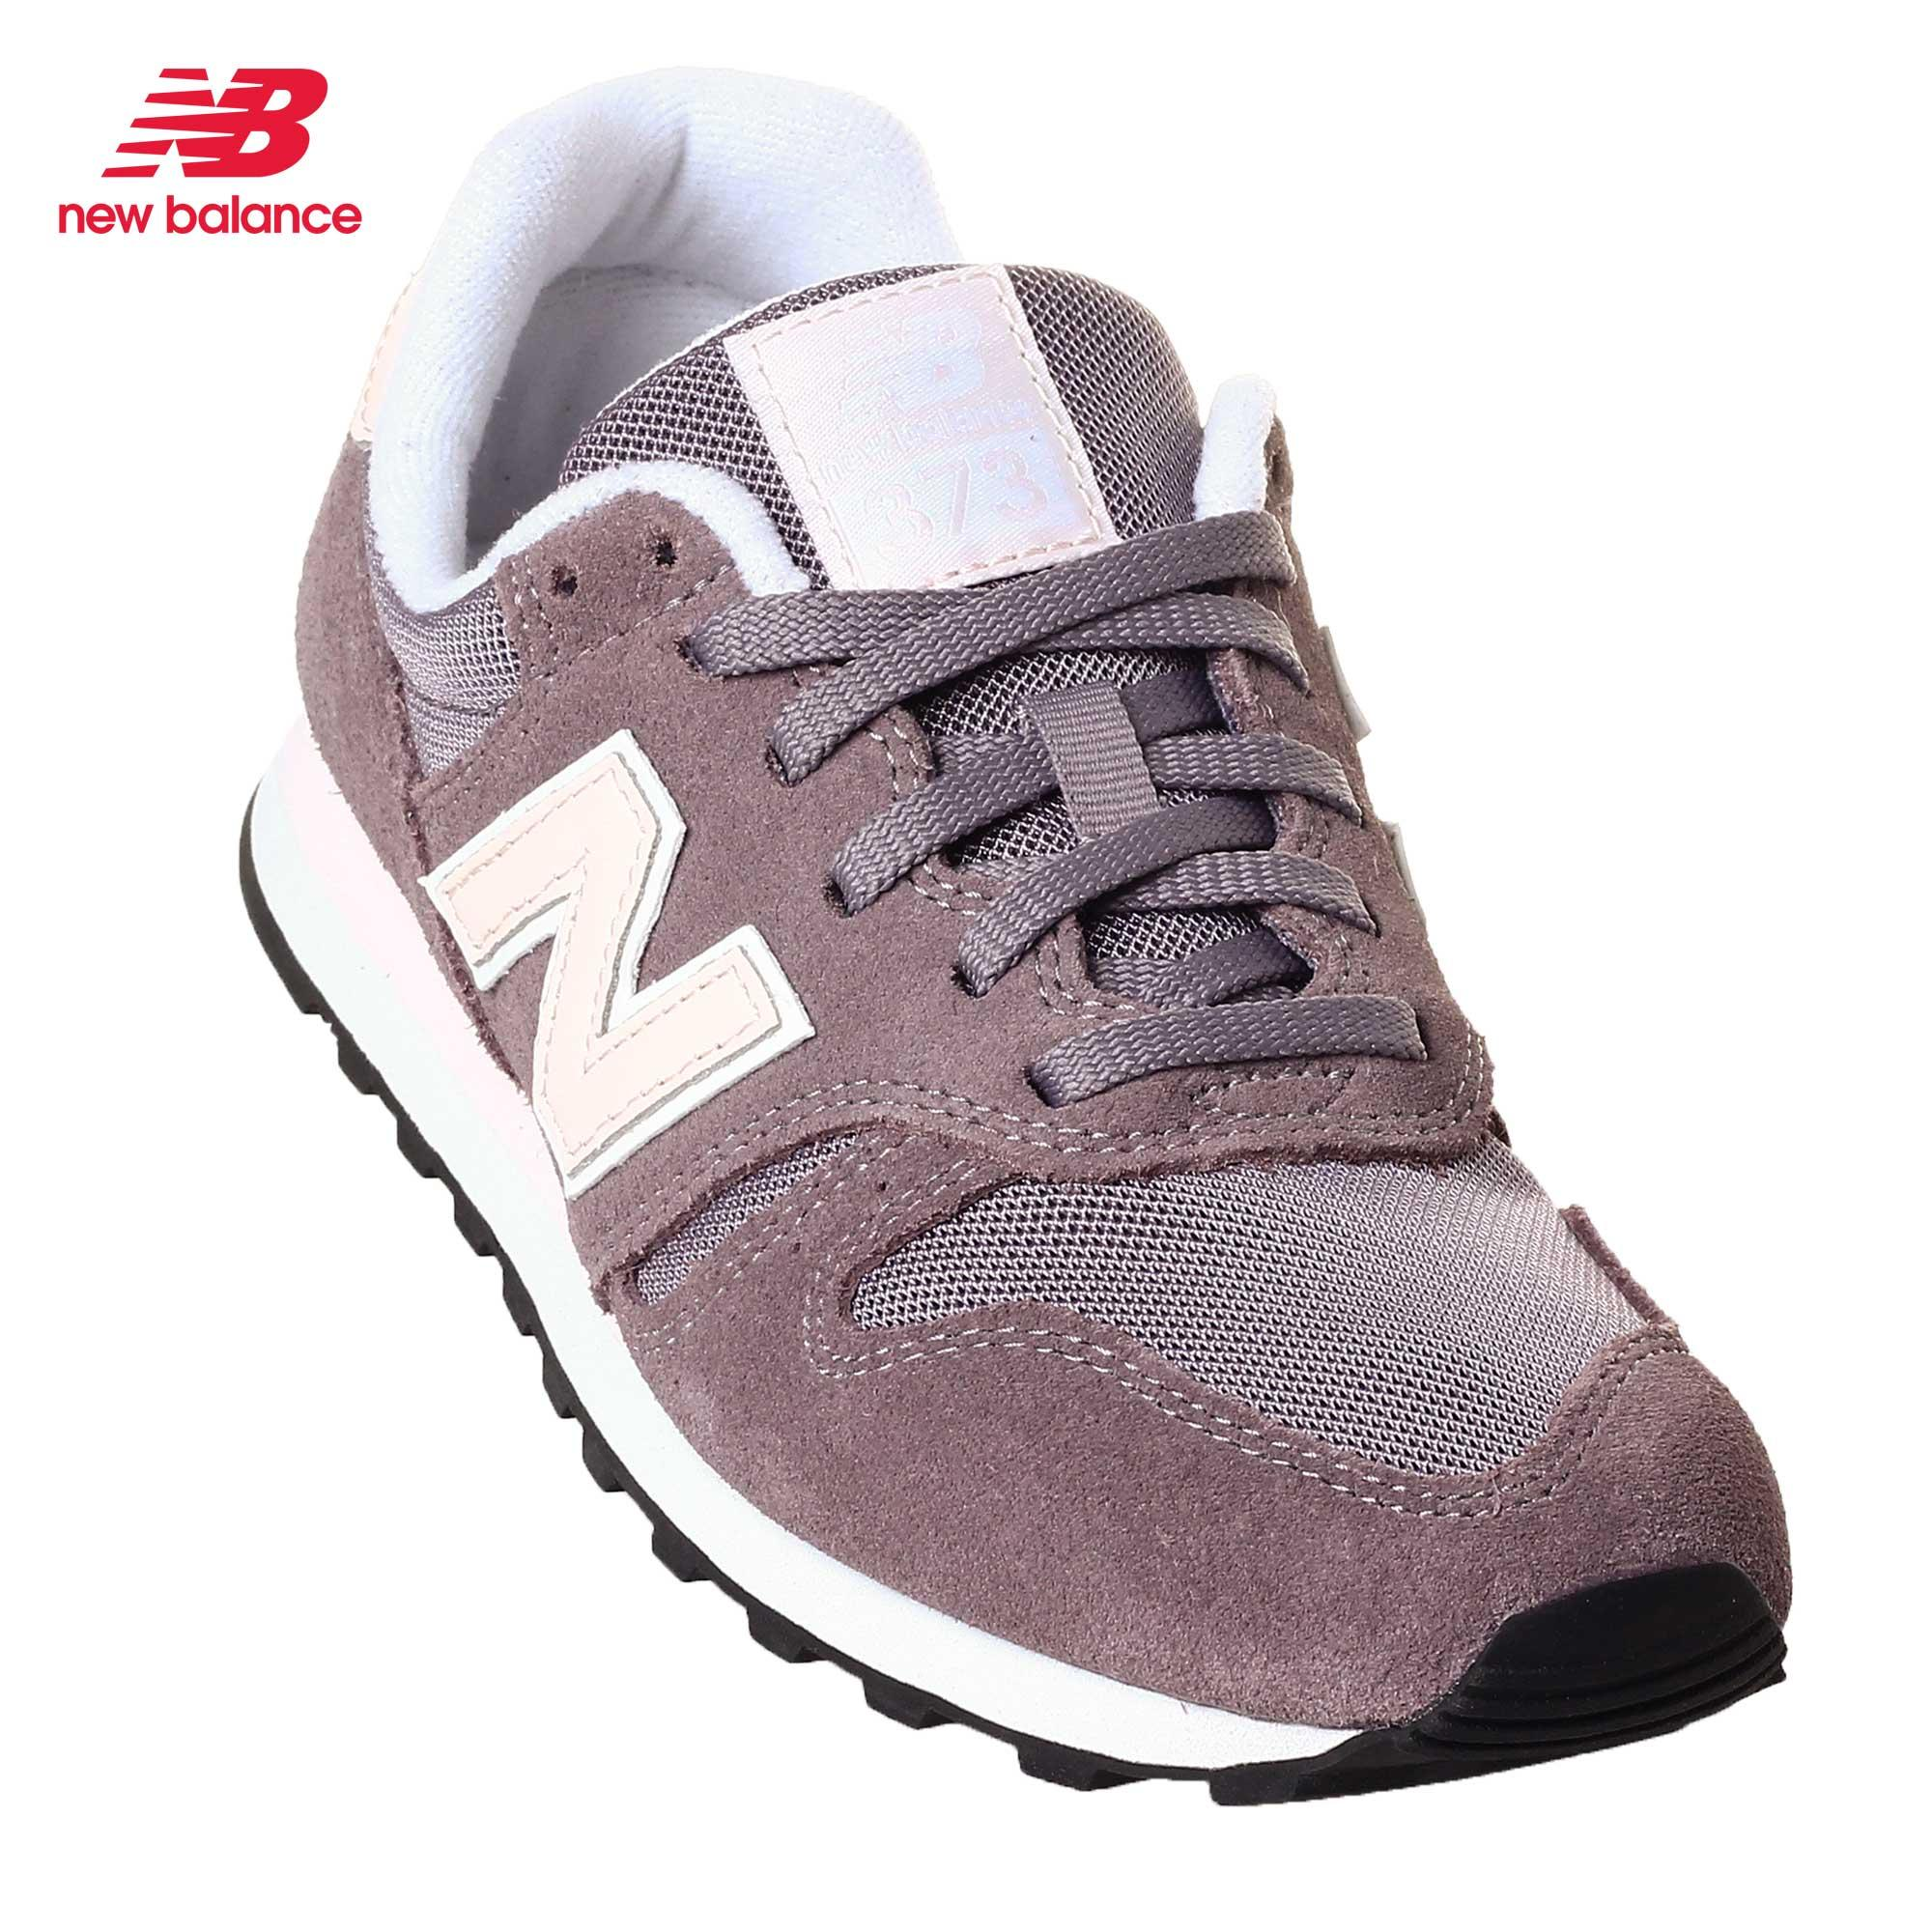 97e87a4a New Balance WL373 Lifestyle Casual Rubber Shoes for Women